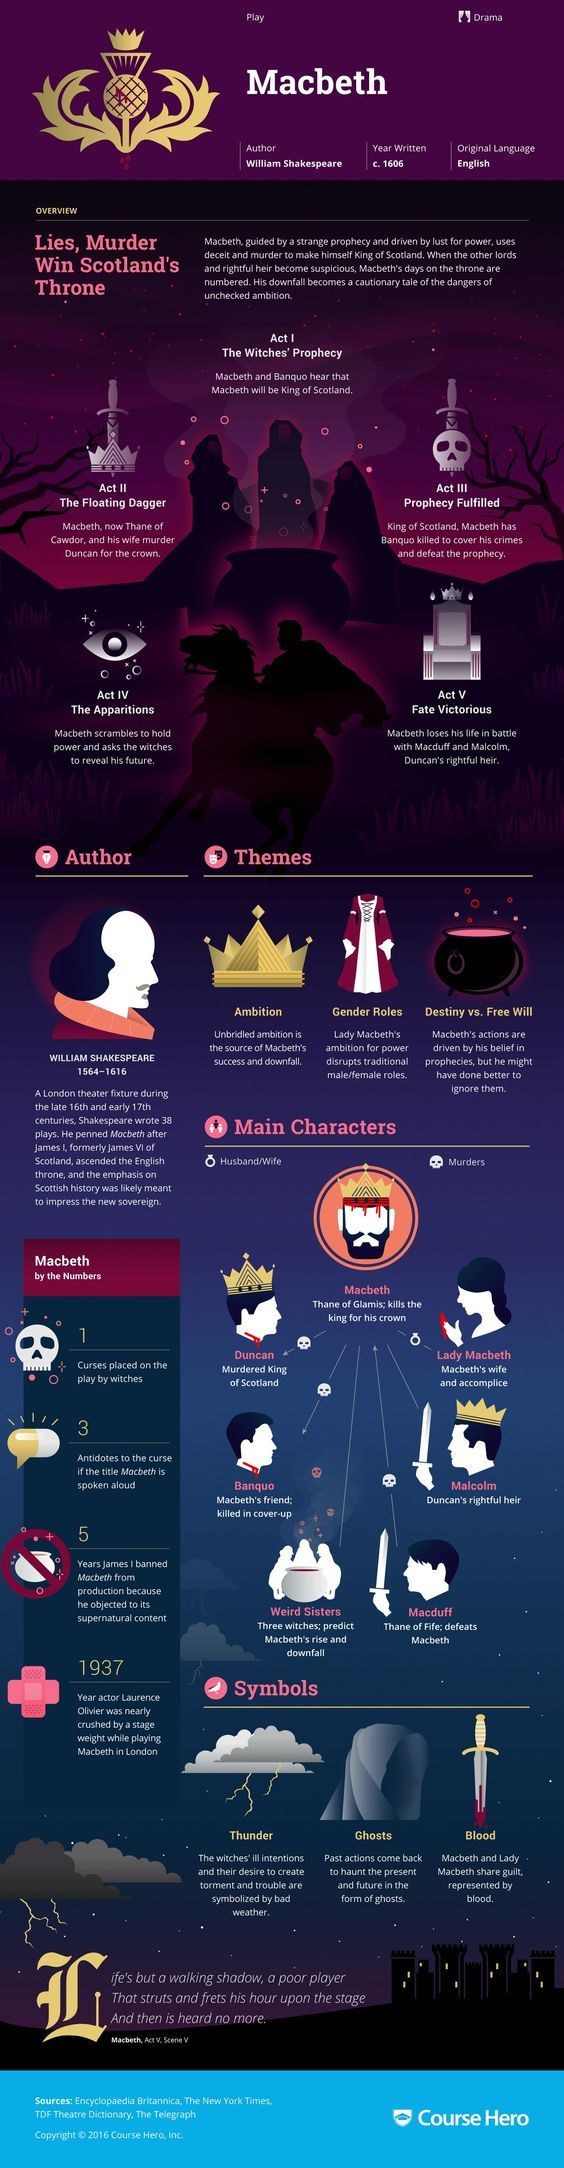 best ideas about macbeth by william shakespeare study guide for william shakespeare s macbeth including scene summary character analysis and more learn all about macbeth ask questions